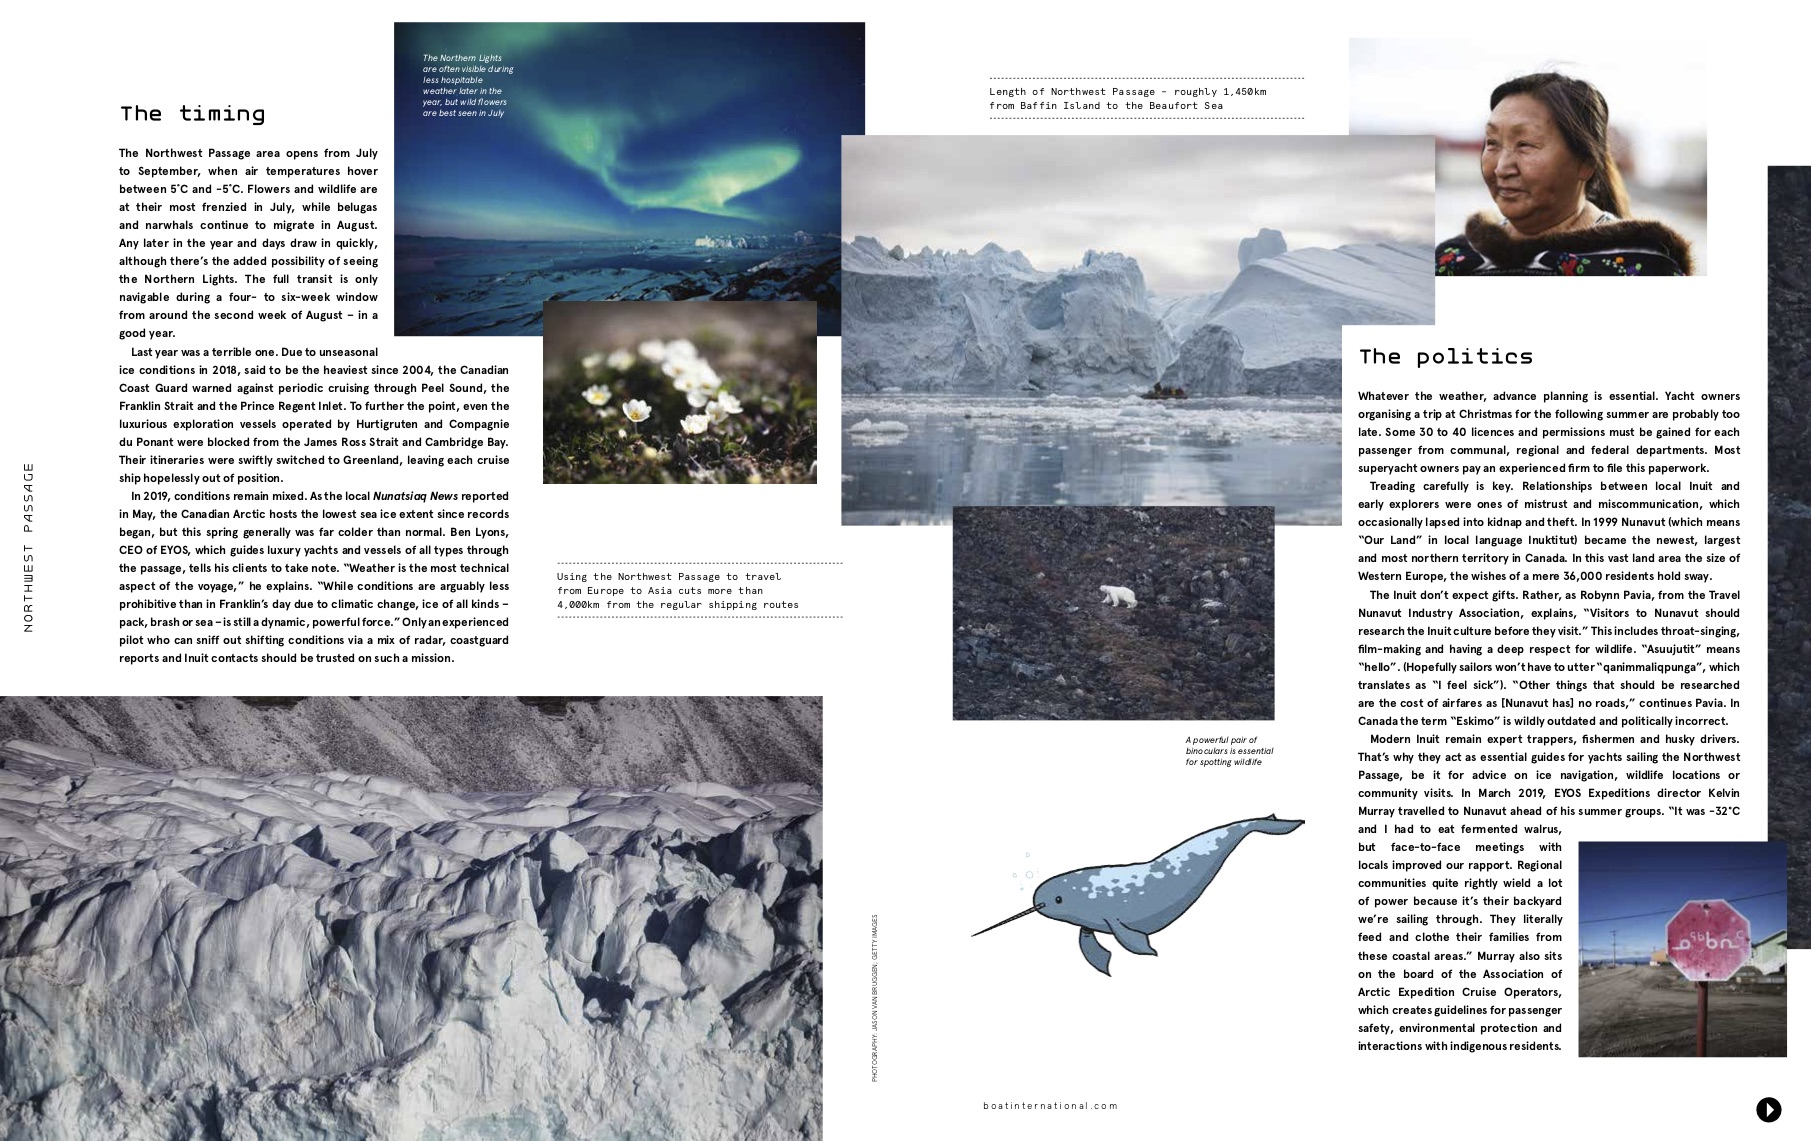 BIUK_09SEPT19_FEAT_NorthwestPassage_Story.p3